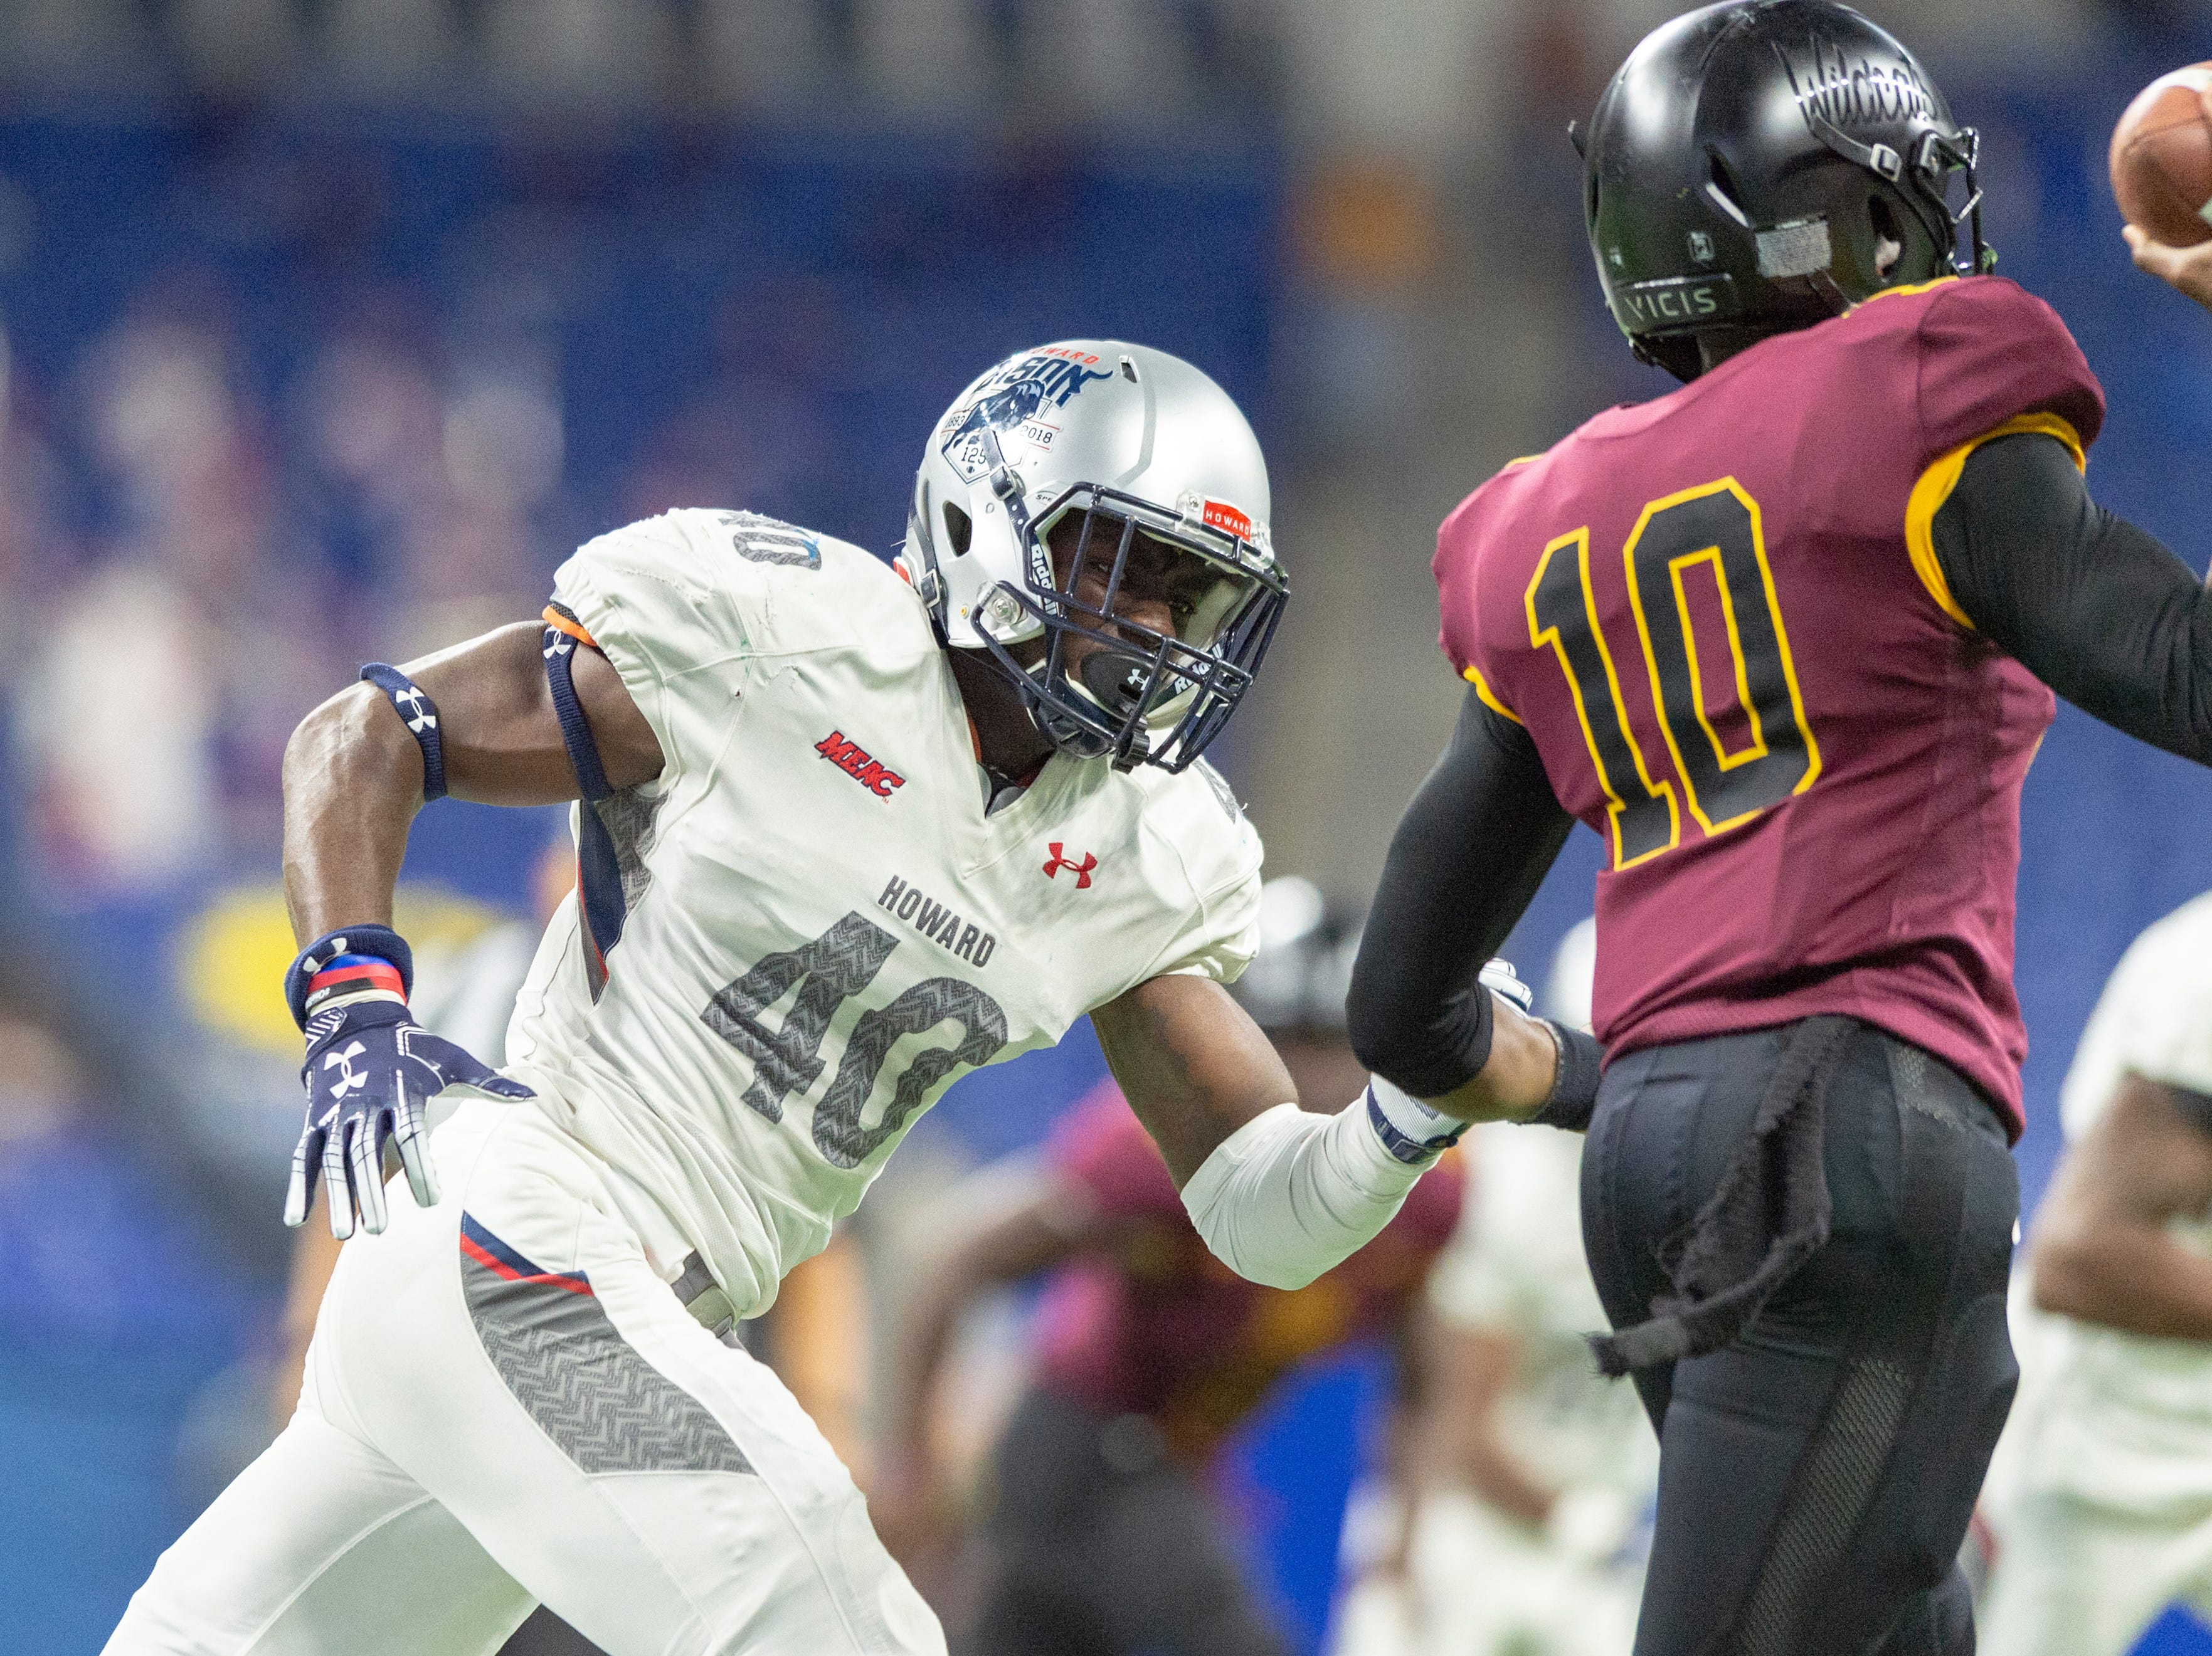 Howard Bison linebacker Zamon Robinson (40) closes in on Bethune Cookman Wildcats quarterback Akevious Williams (10) during the first half of action. Howard Bison took on Bethune Cookman Wildcats in the Circle City Classic game, Saturday, Sept. 22, 2018, at Lucas Oil Stadium.